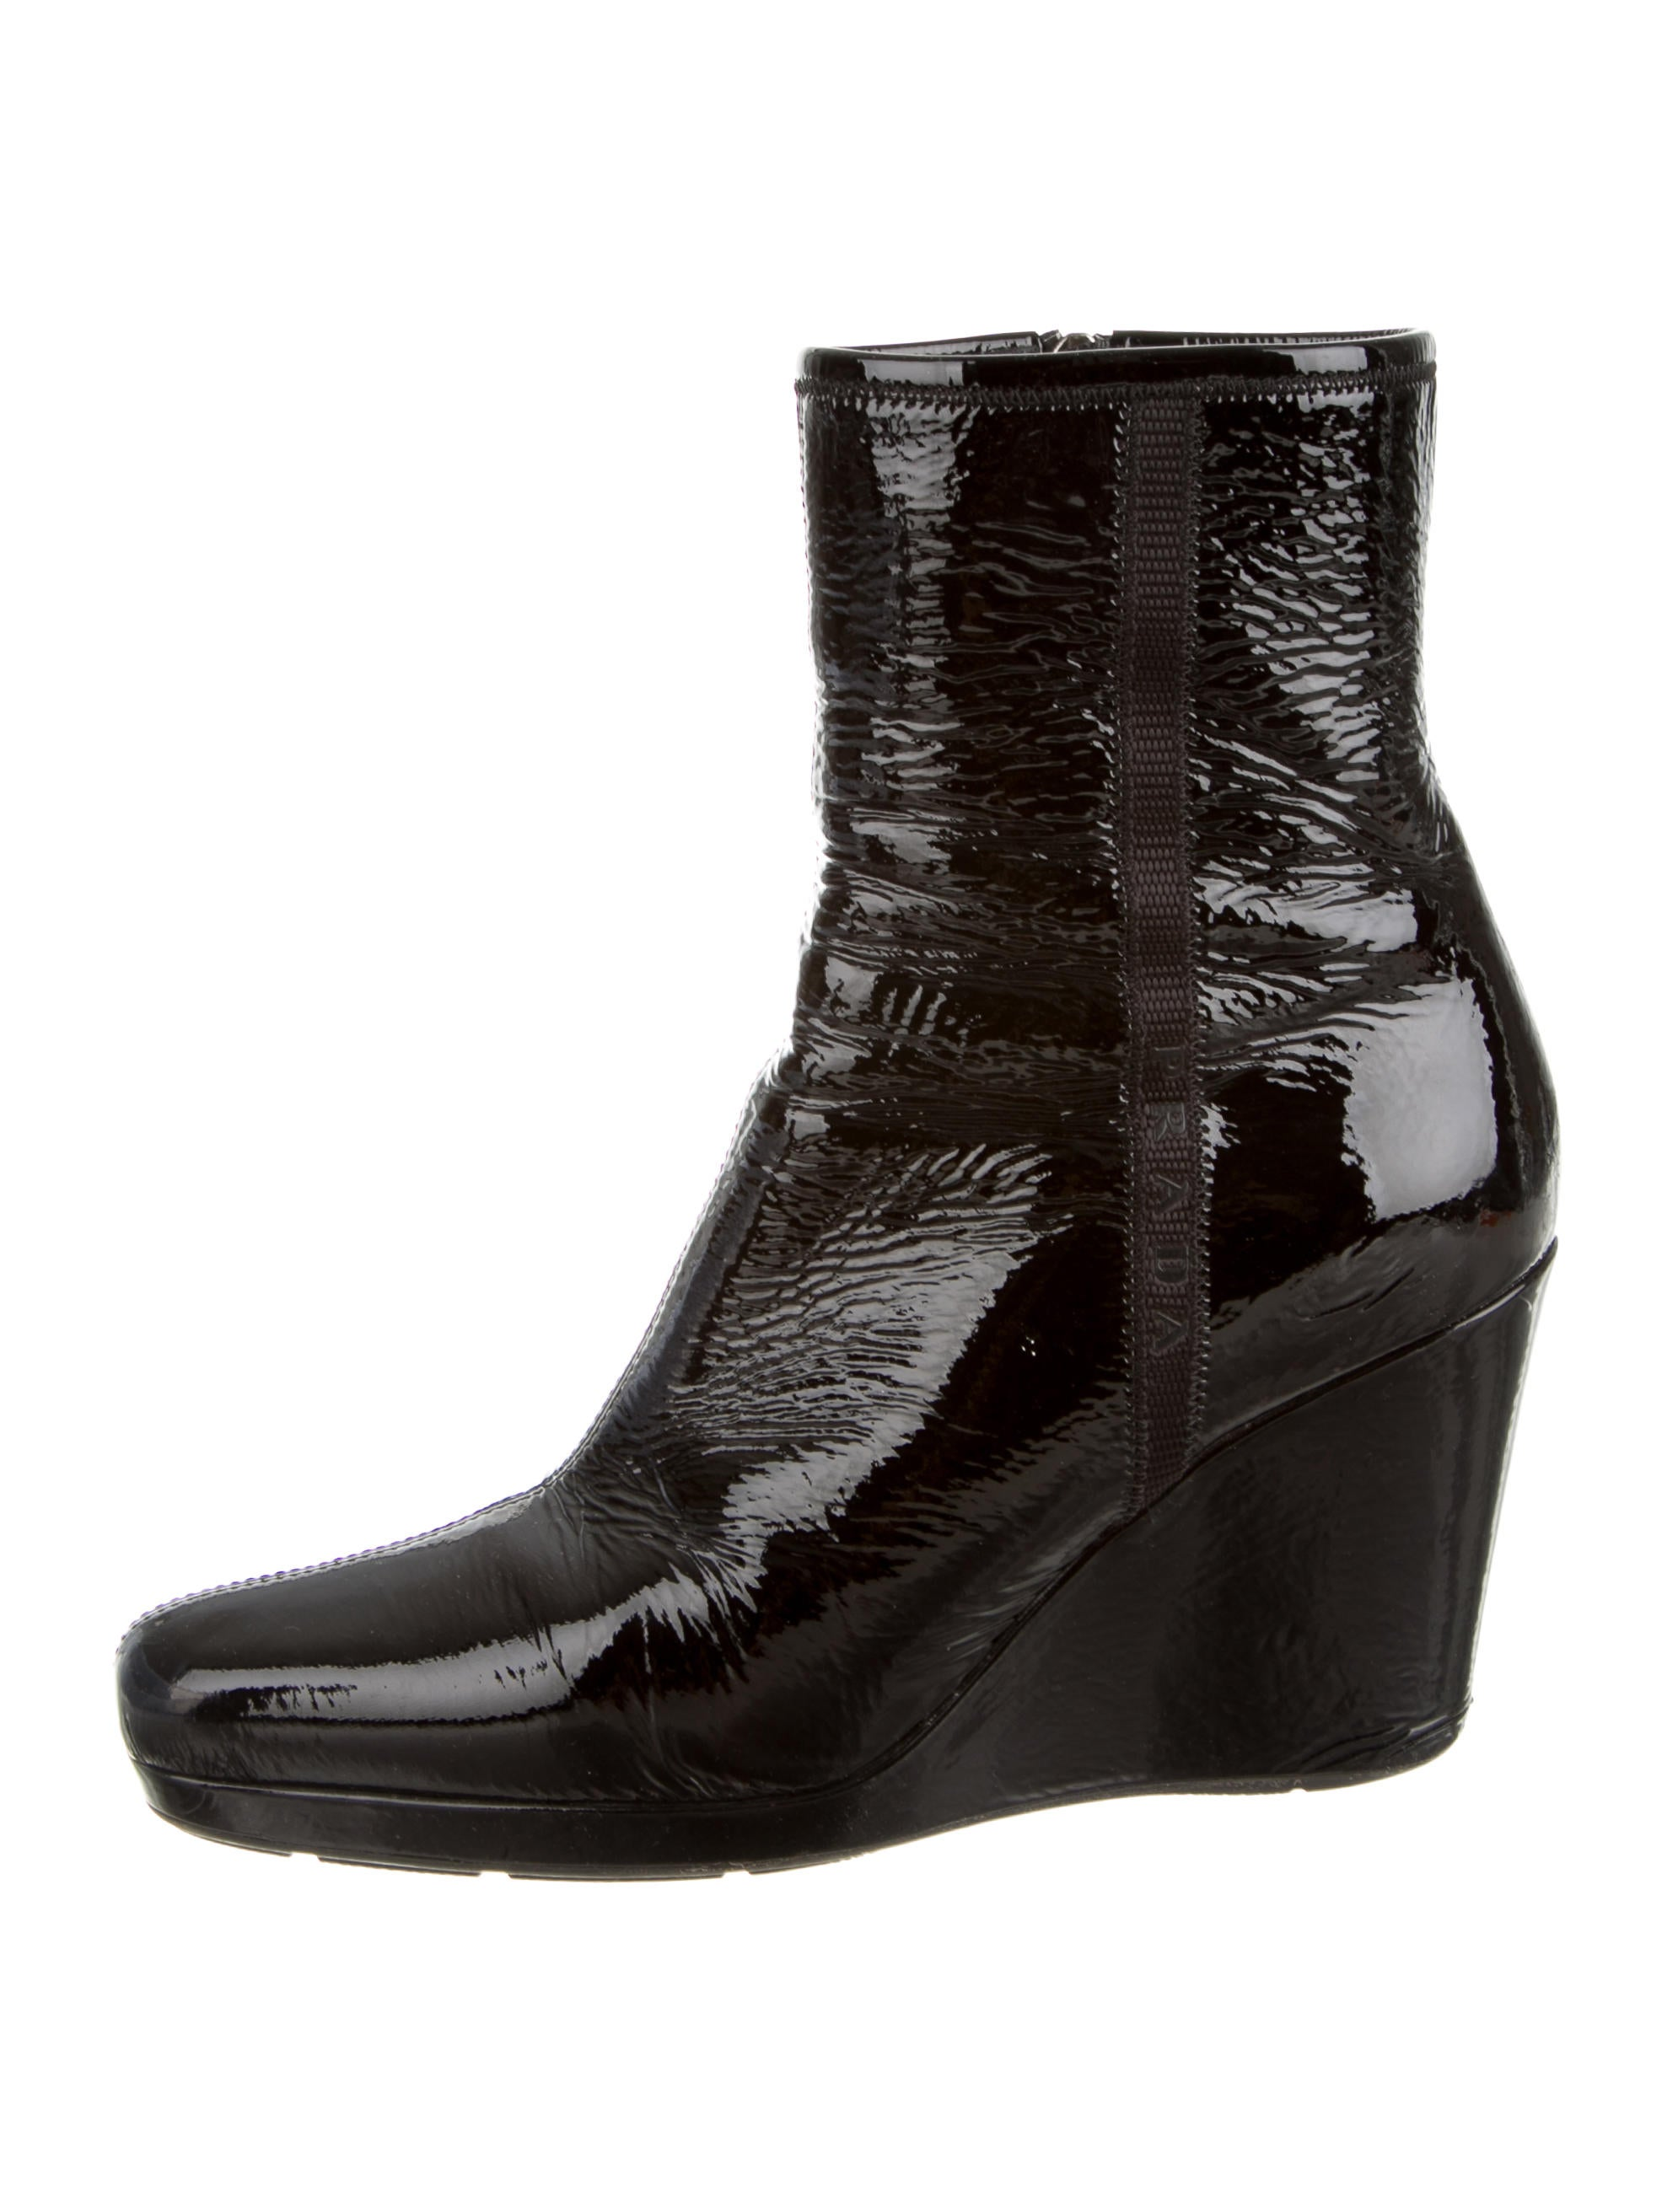 prada sport patent leather wedge booties shoes